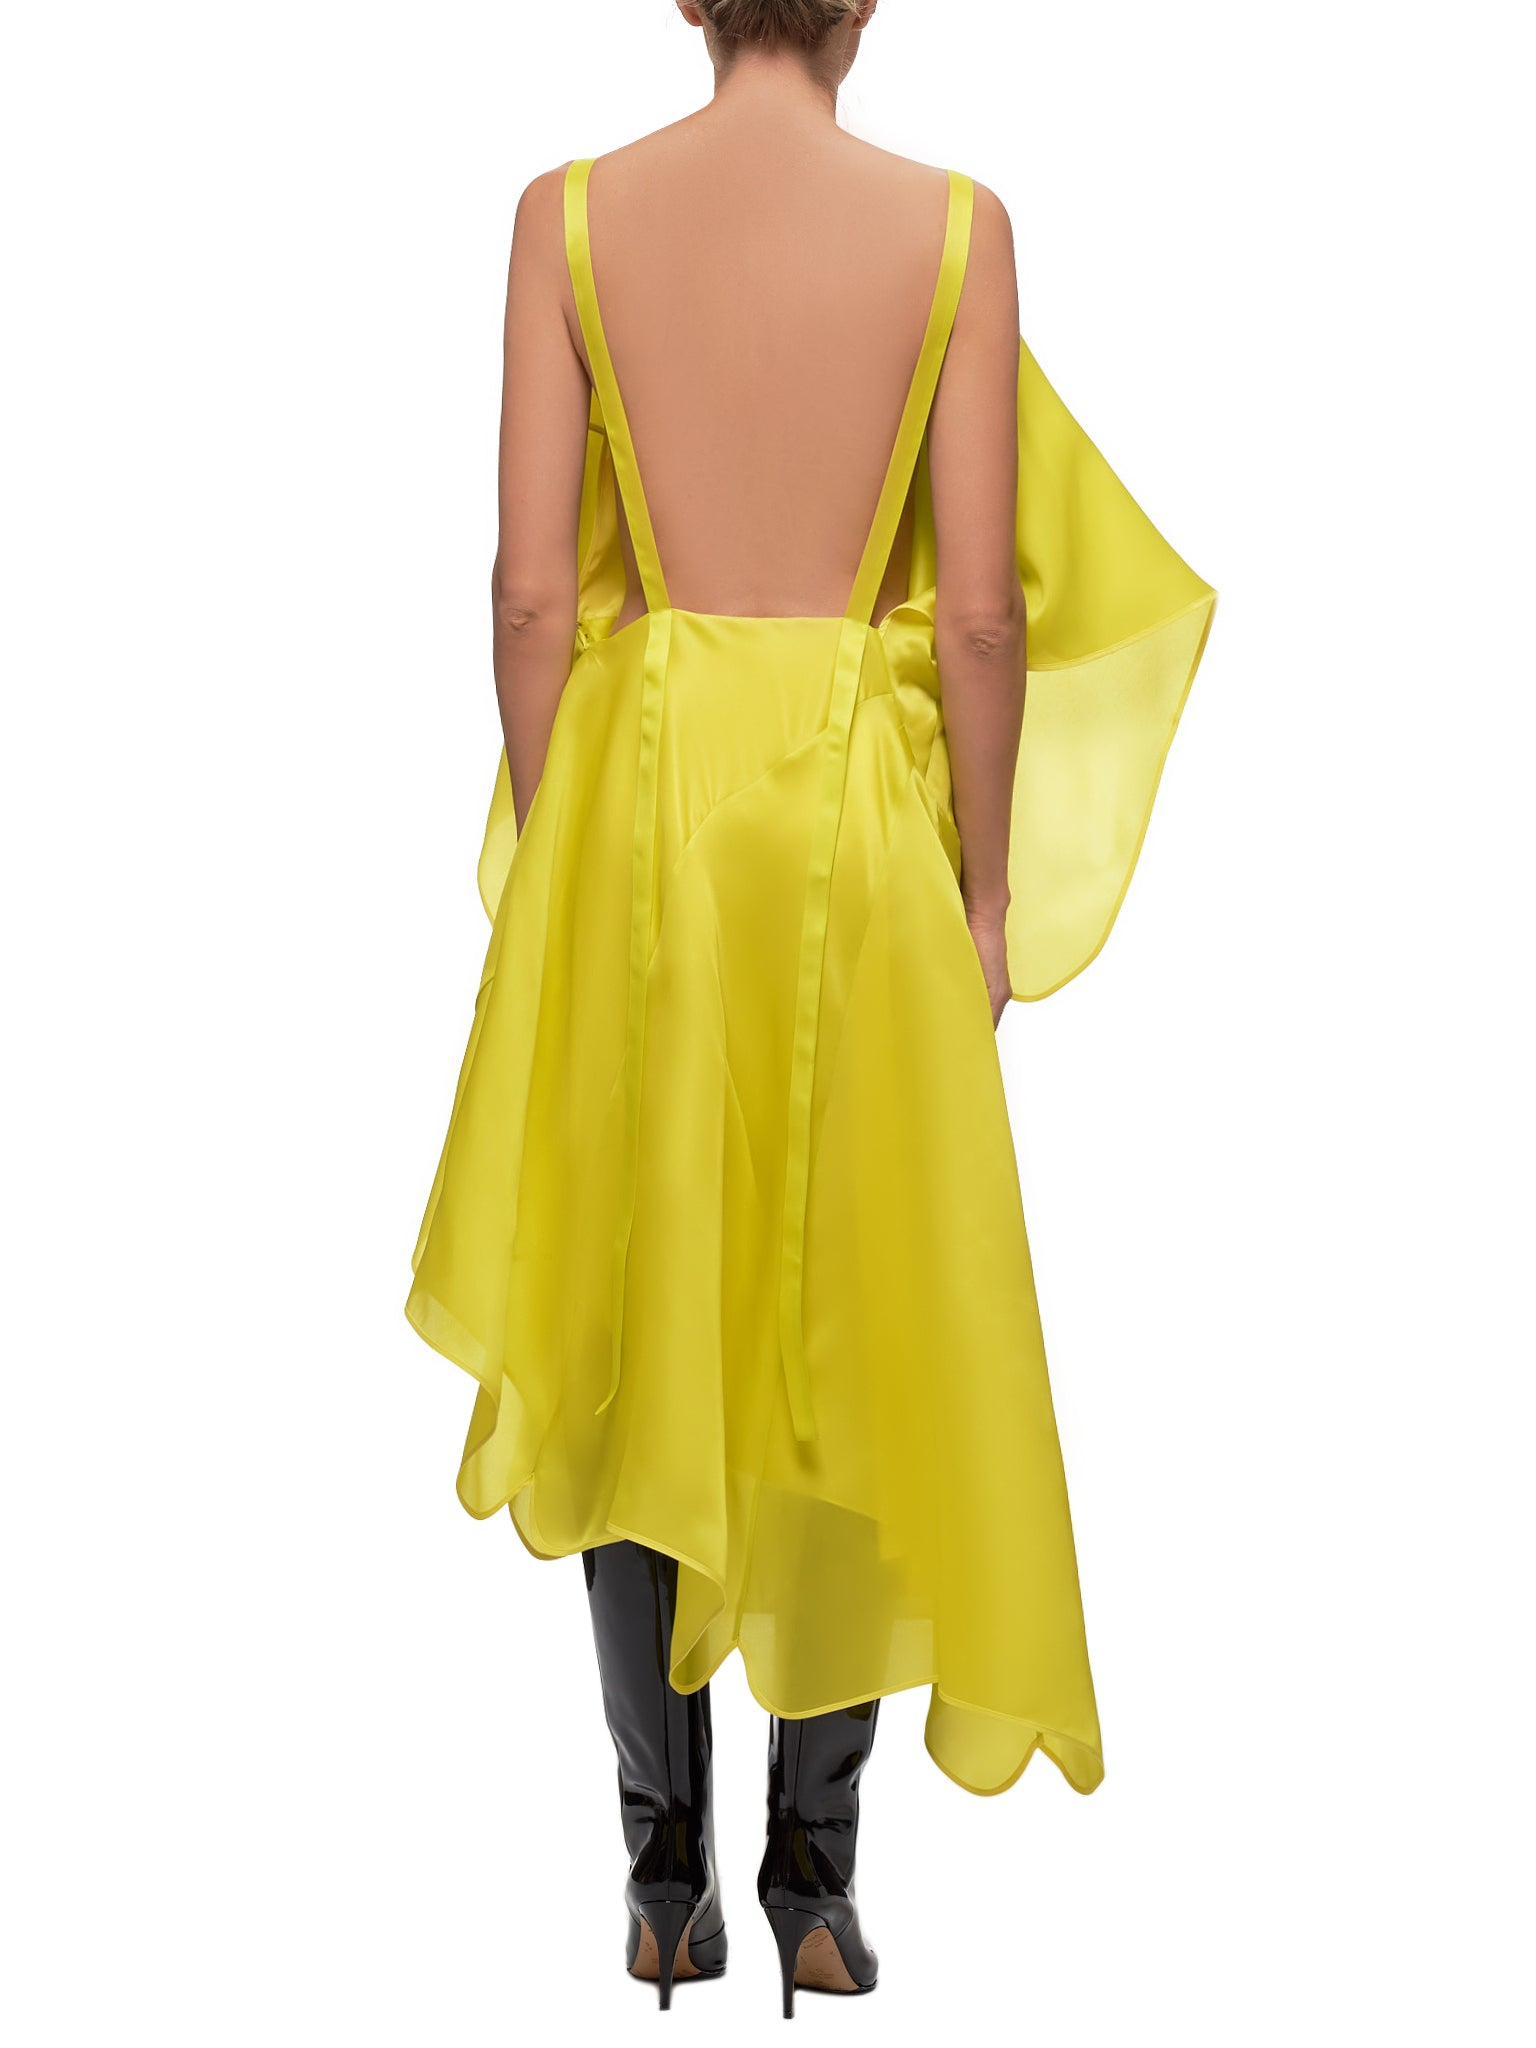 Nina Ricci Dress - Hlorenzo Back